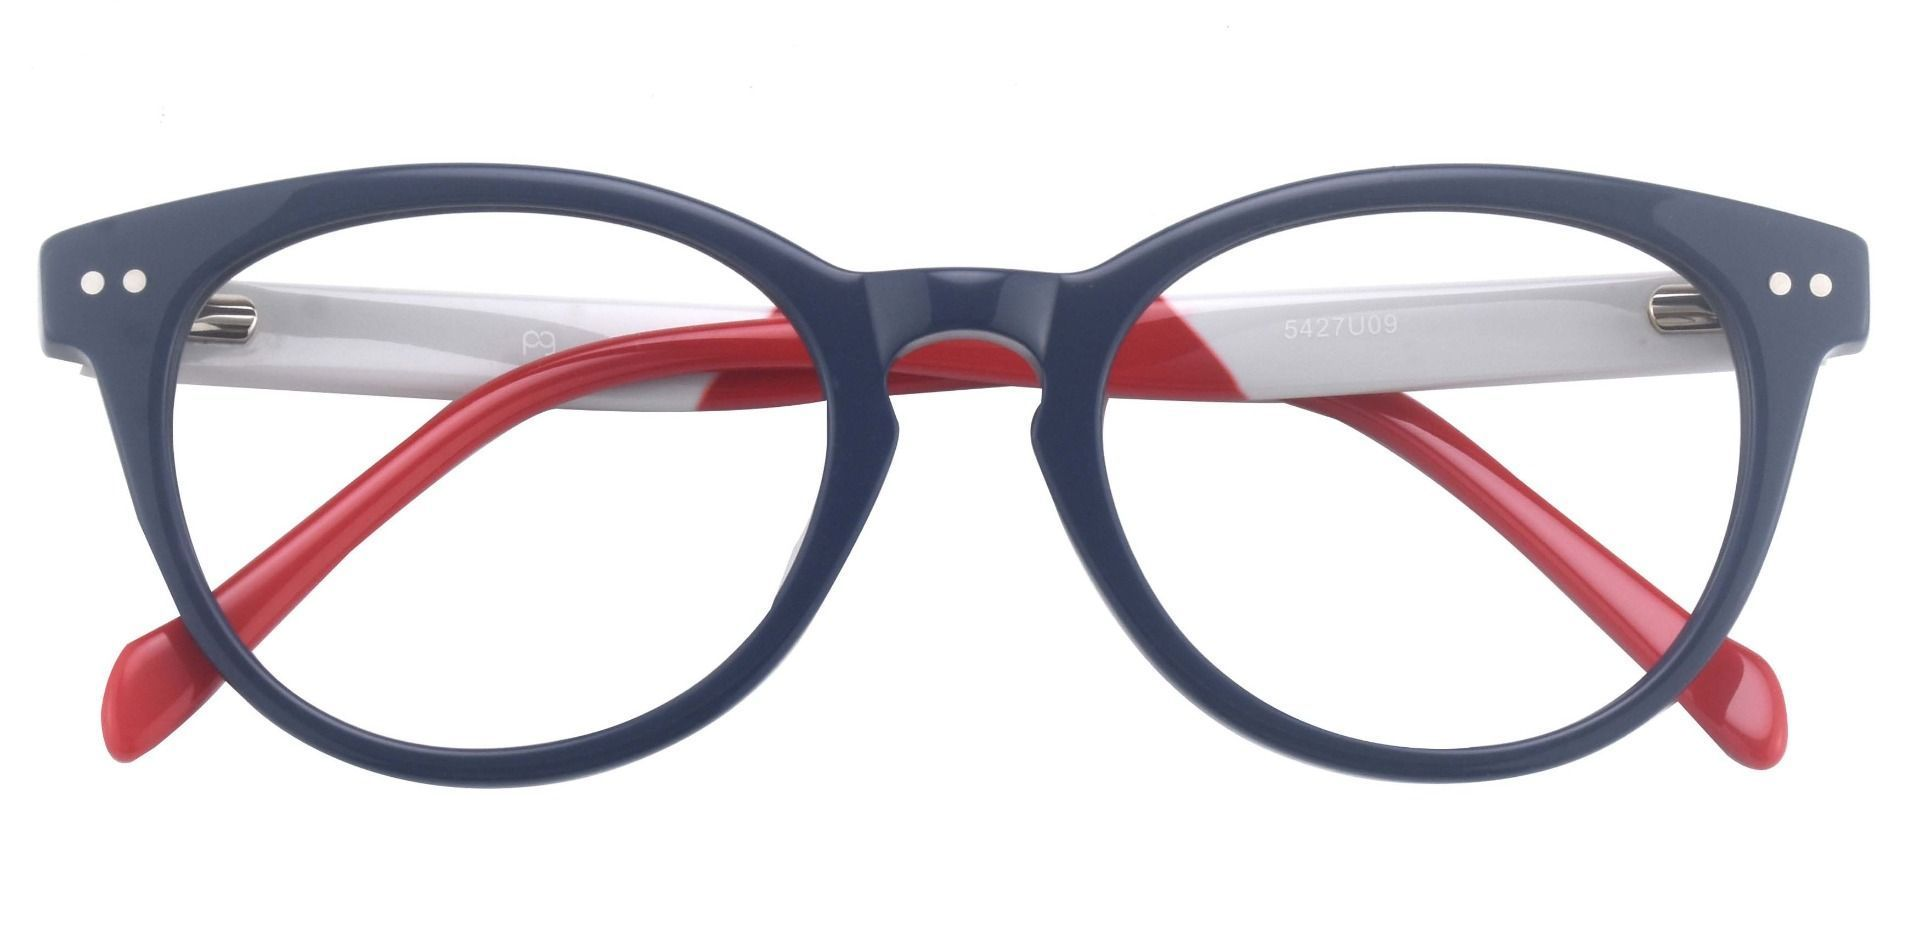 Revere Oval Prescription Glasses - The Frame Is Blue And Red